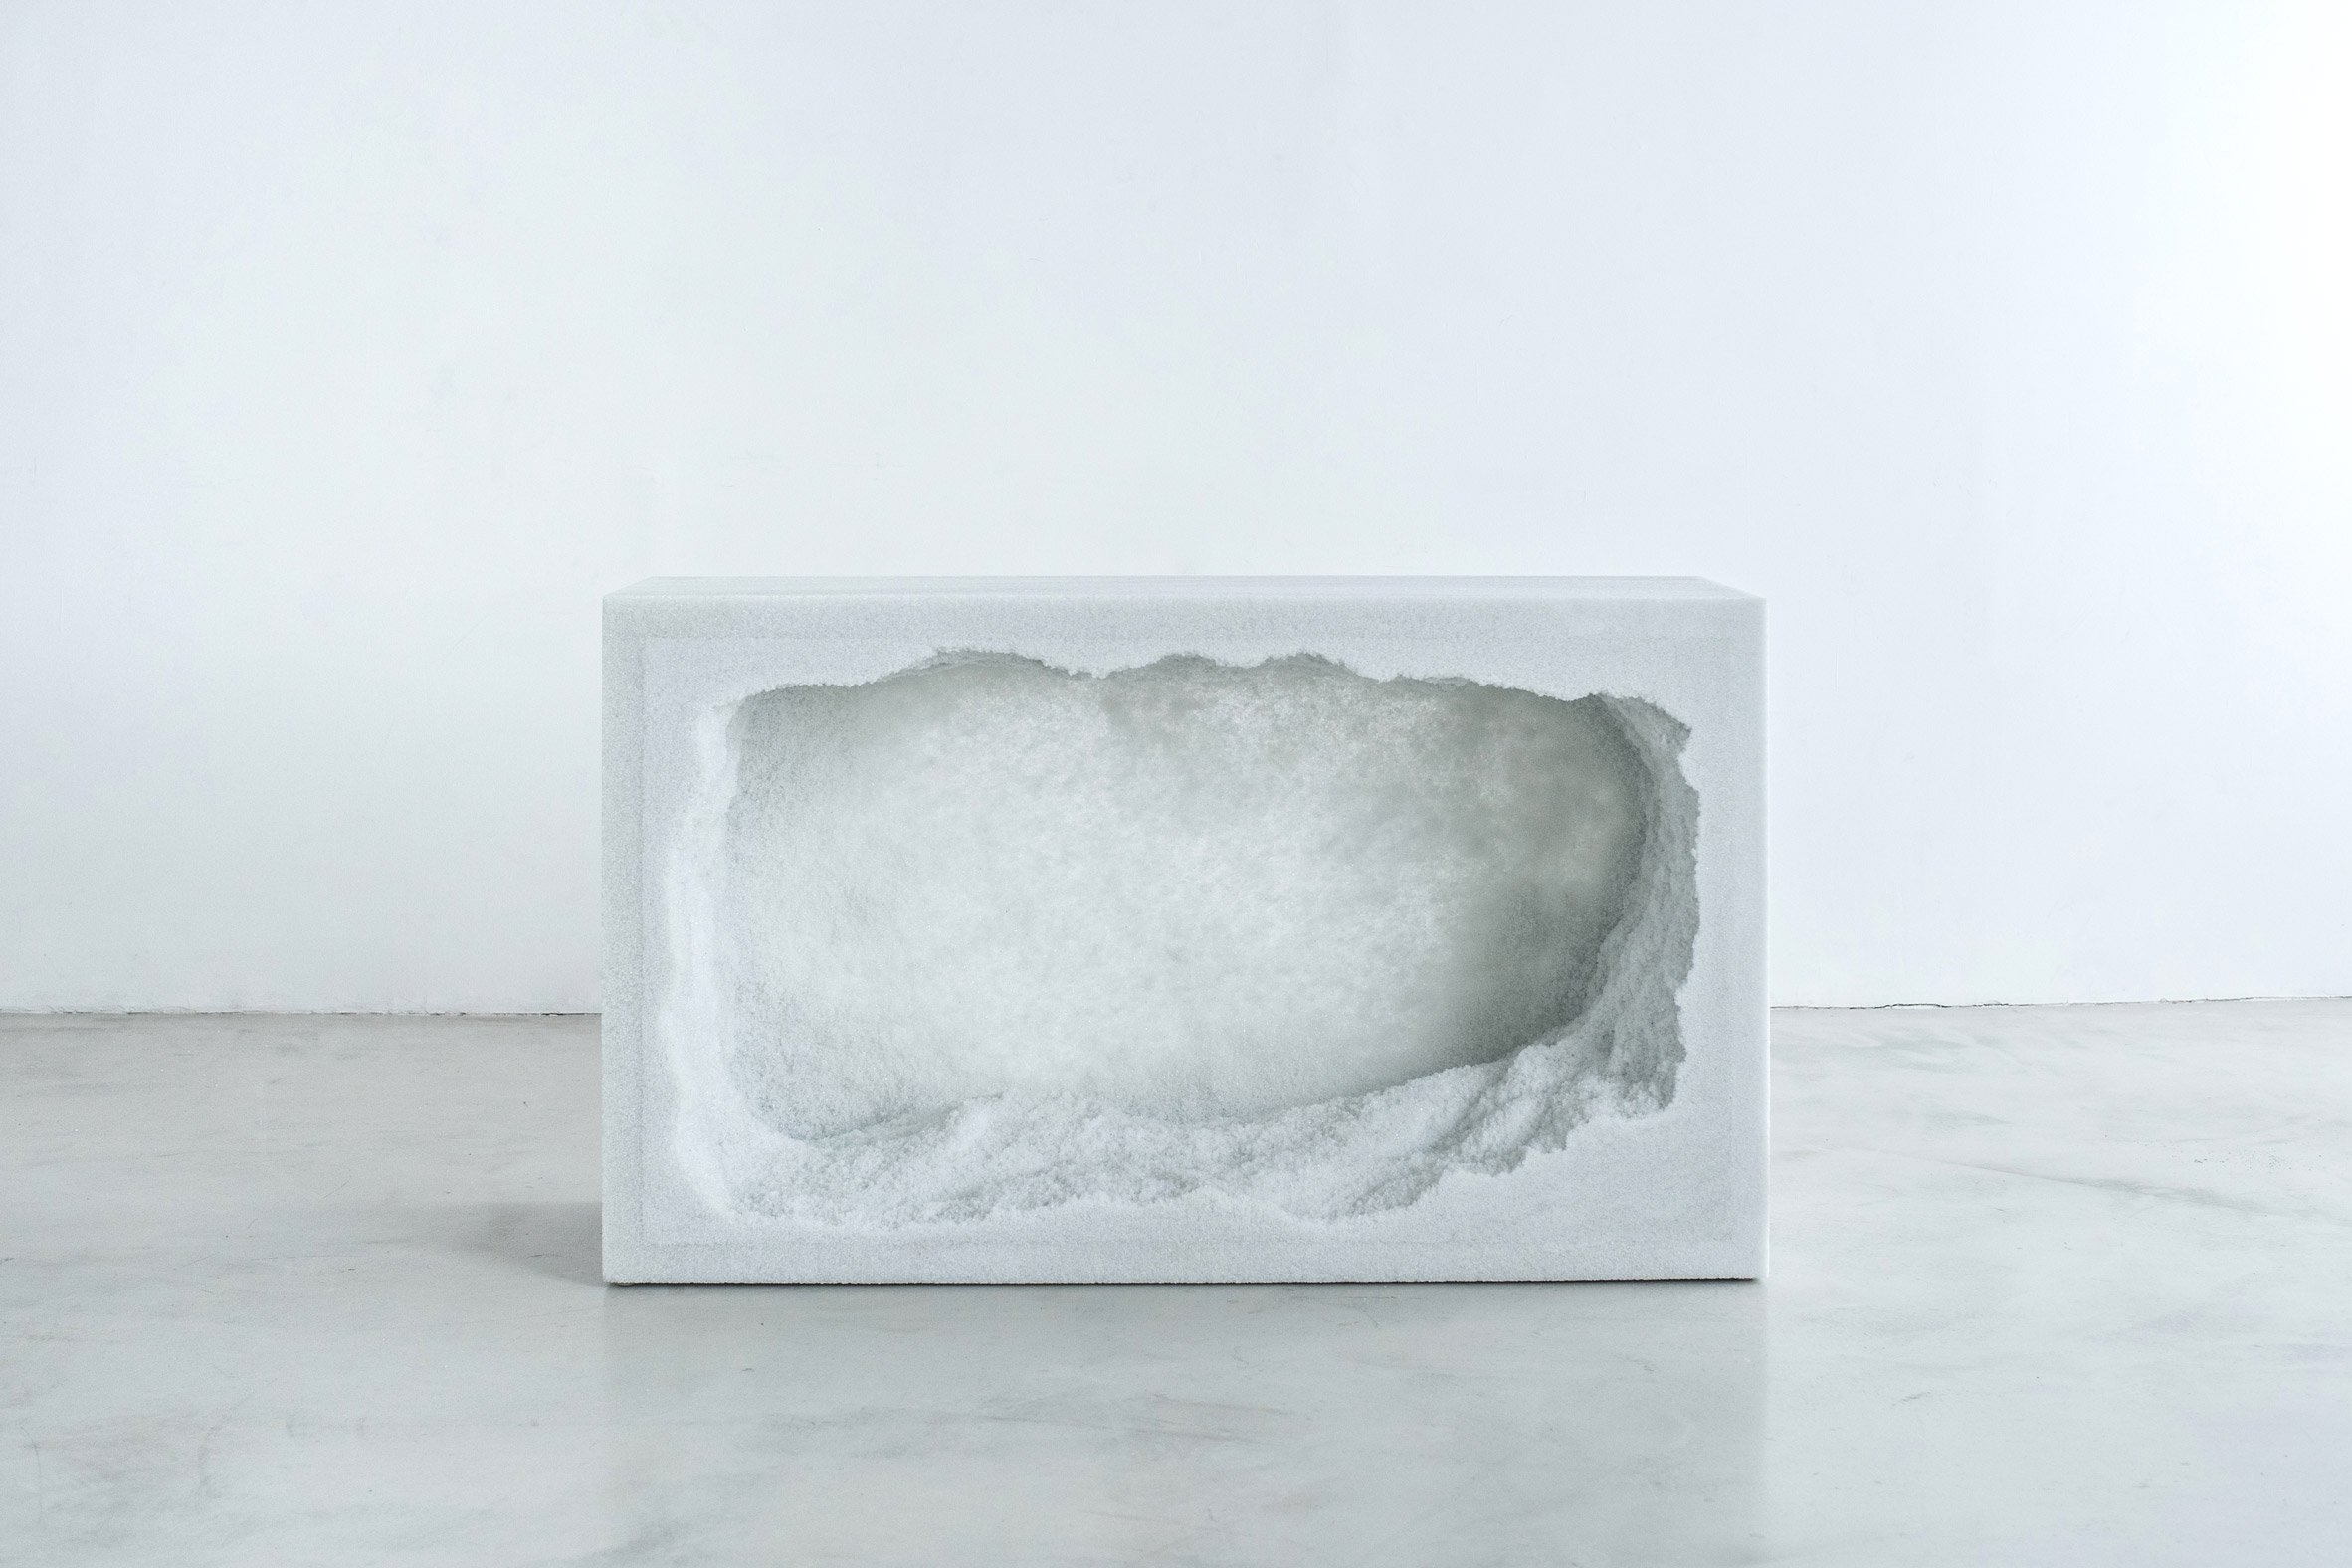 ghost-thaw-furniture-fernando-mastrangelo-collection-new-york-cast-console_dezeen_2364_col_4